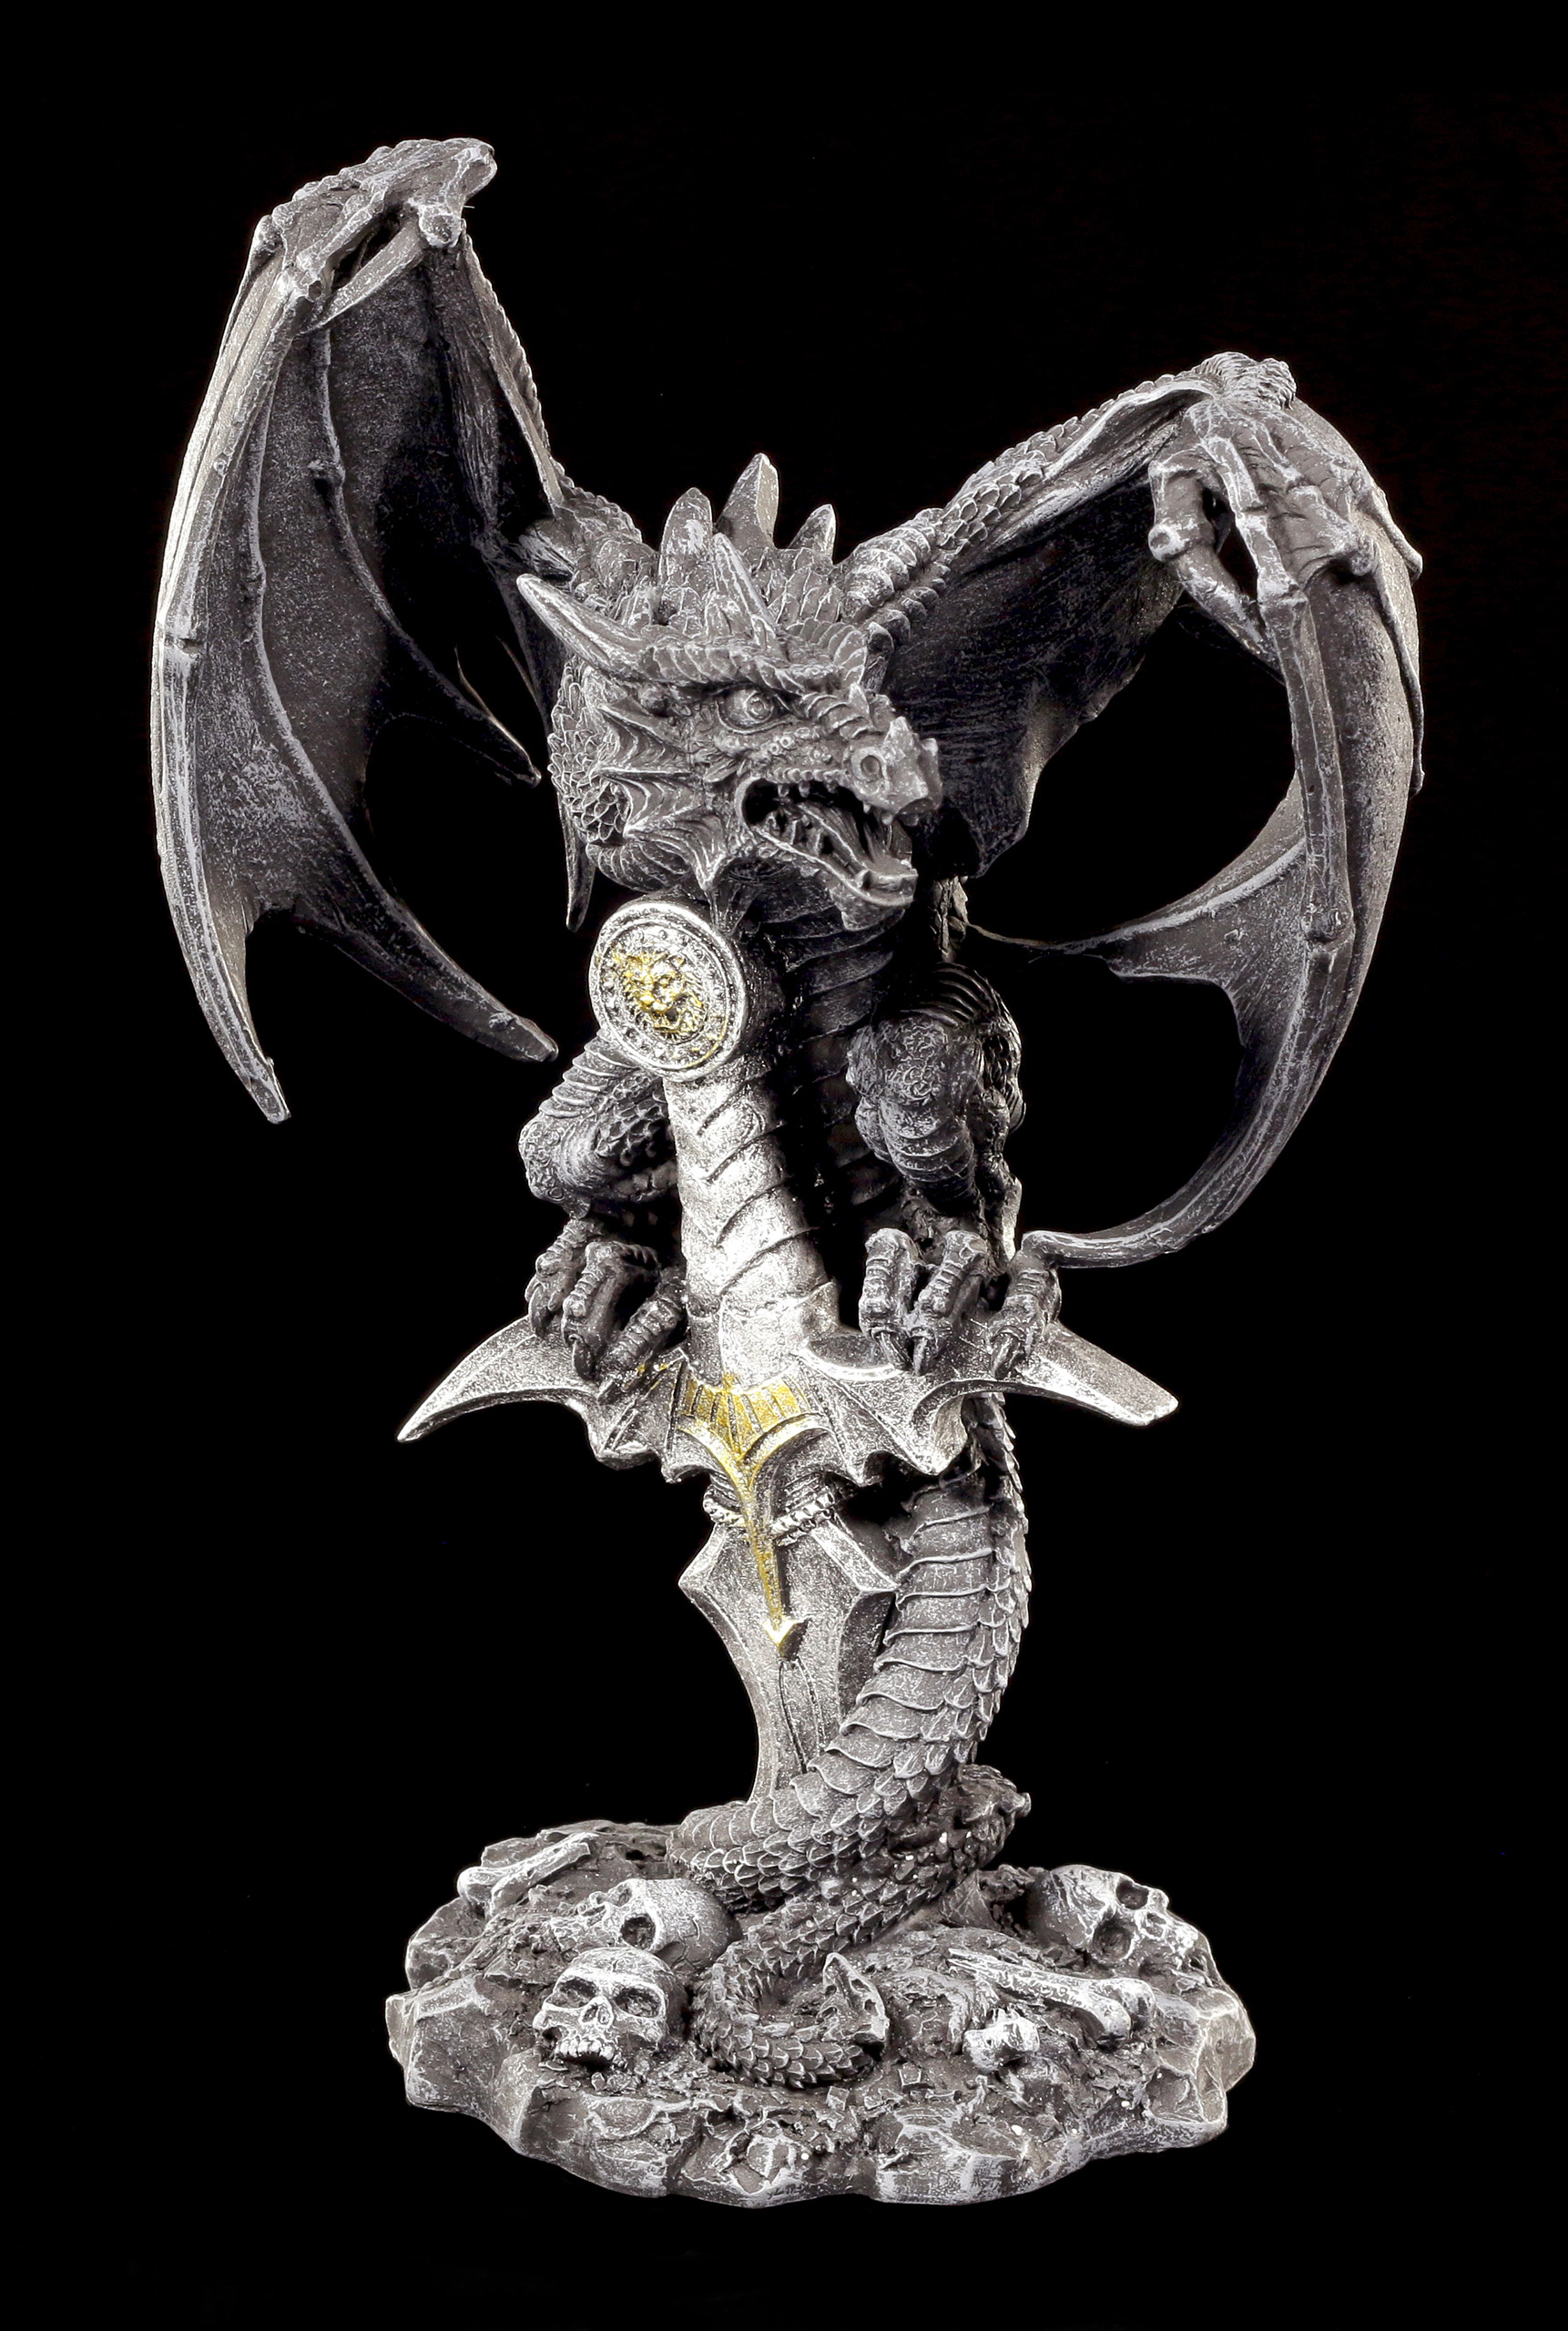 The Drachen Sword Figur And Dragon nm0wN8